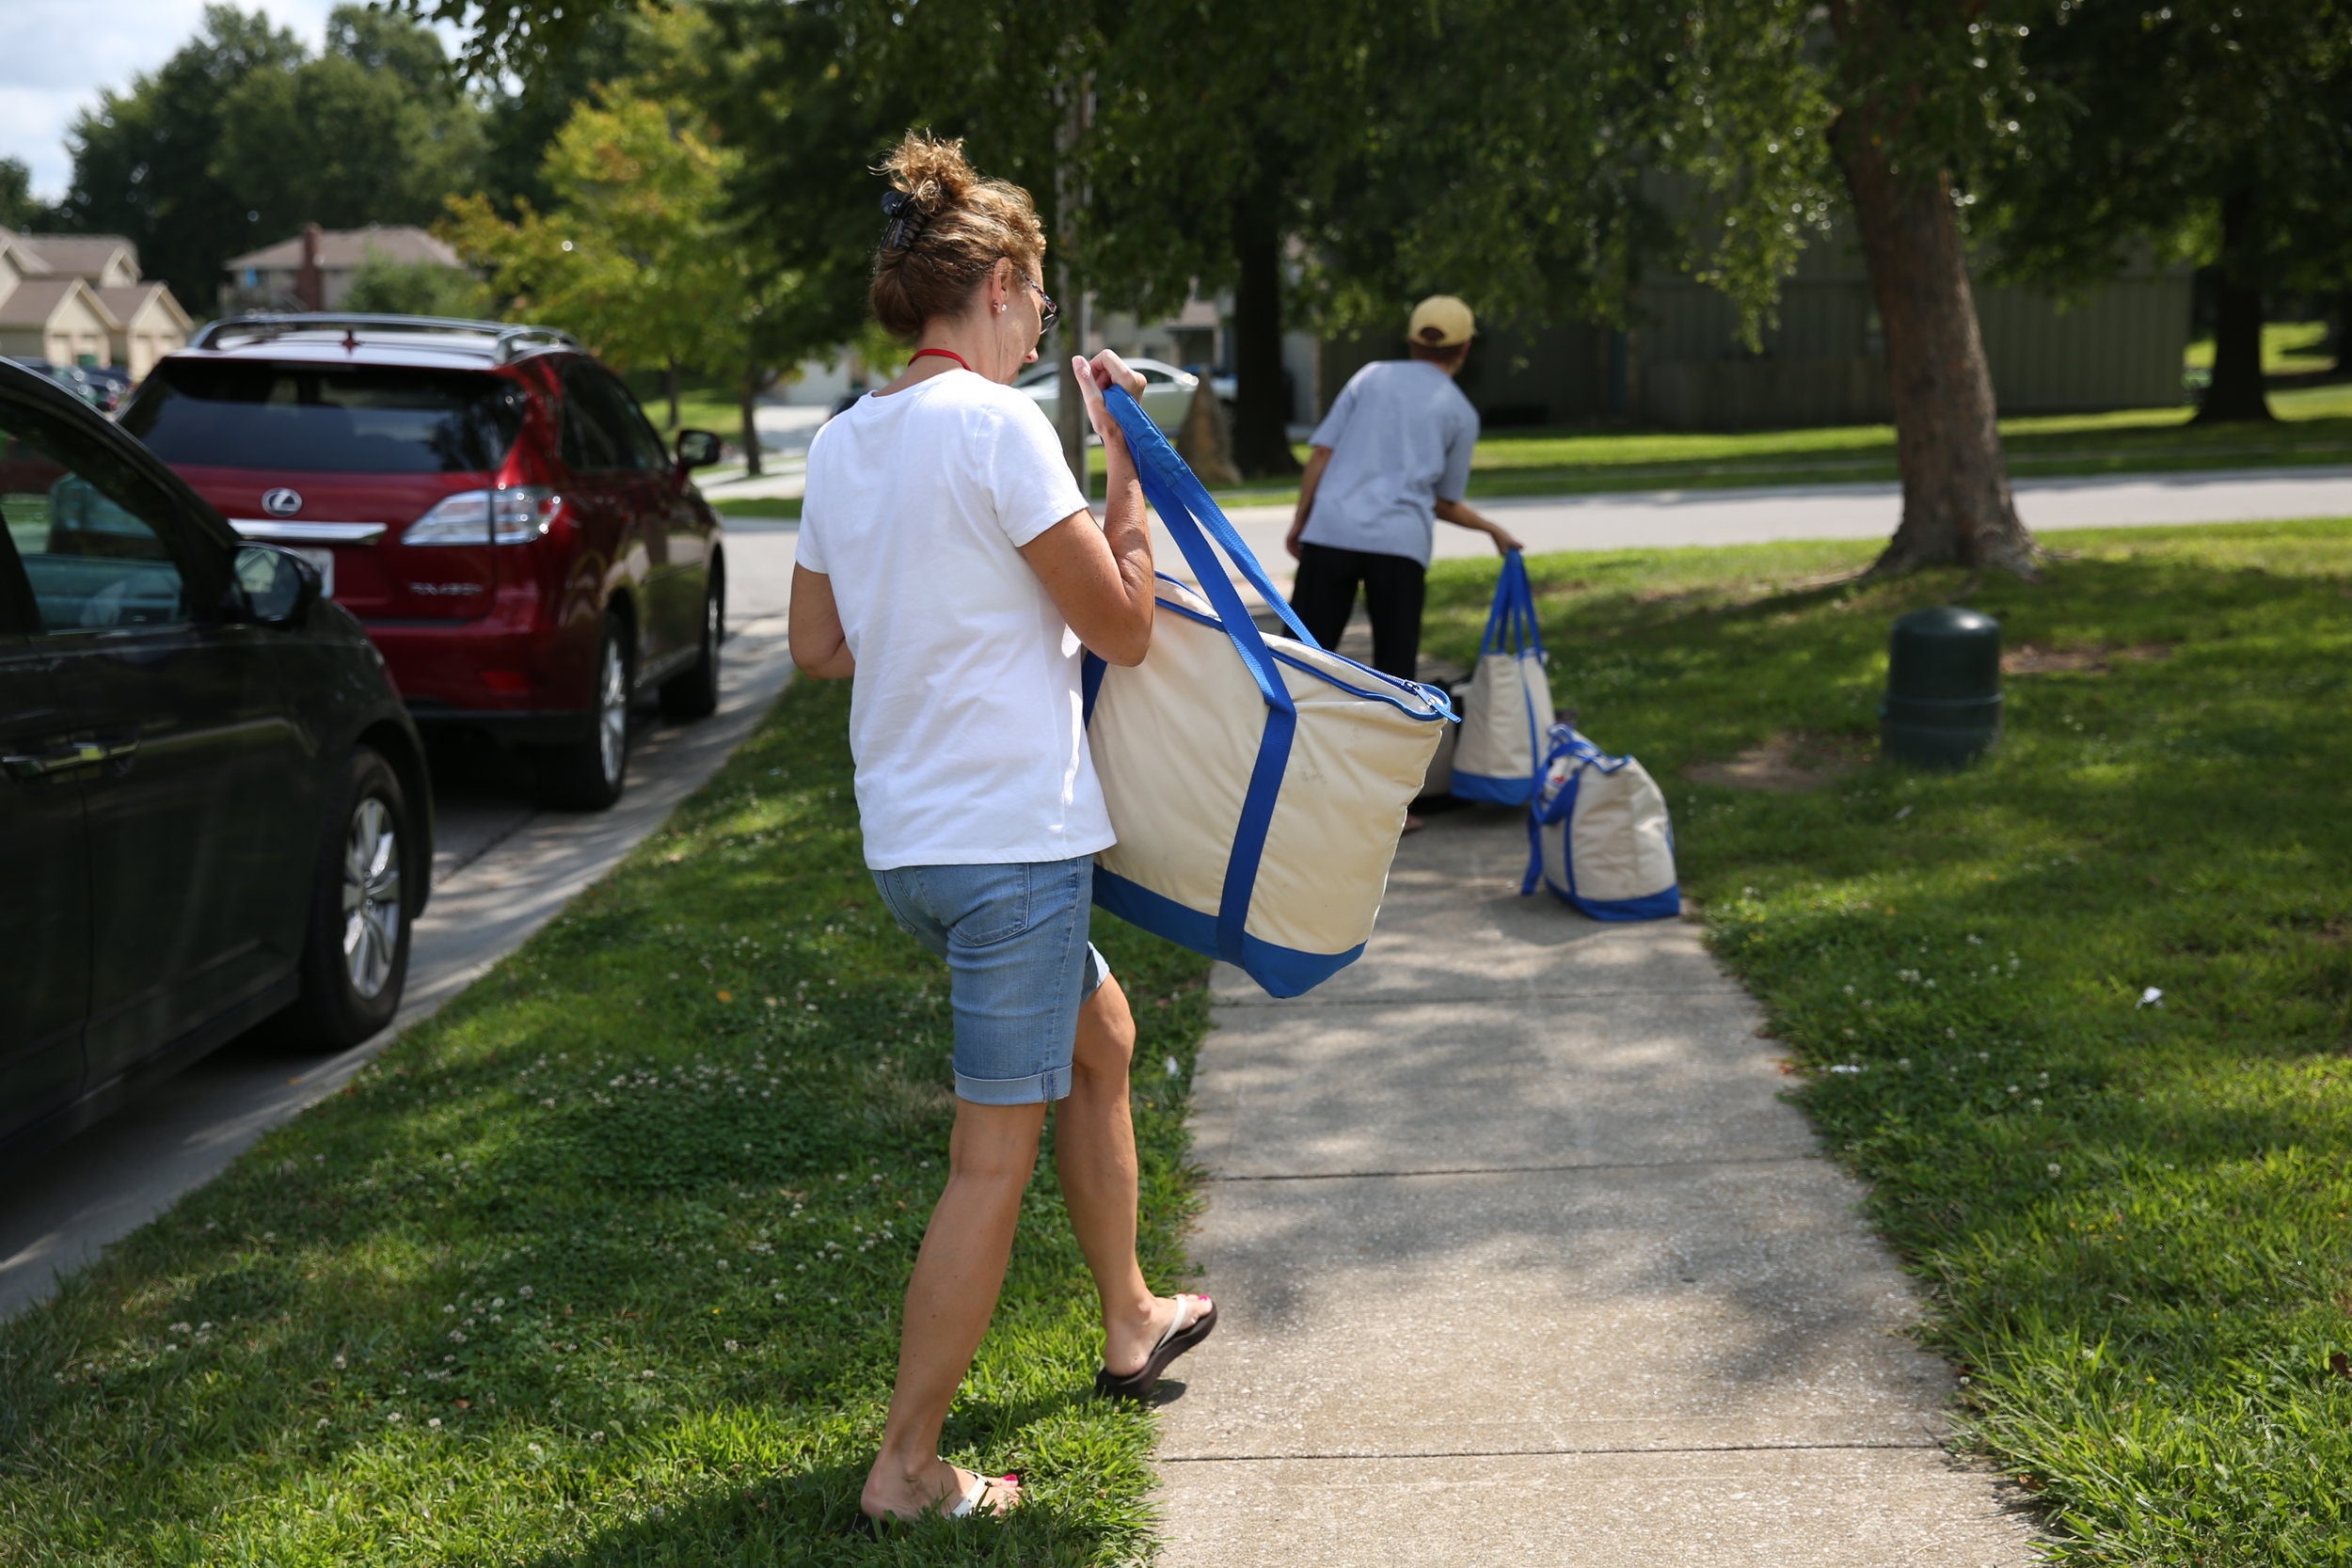 Delivery Team - Help deliver the lunches on weekdays from 11:10am-12:45pm. This offers the best opportunity to build relationships with kids and families you serve.This team is now full for 2019.